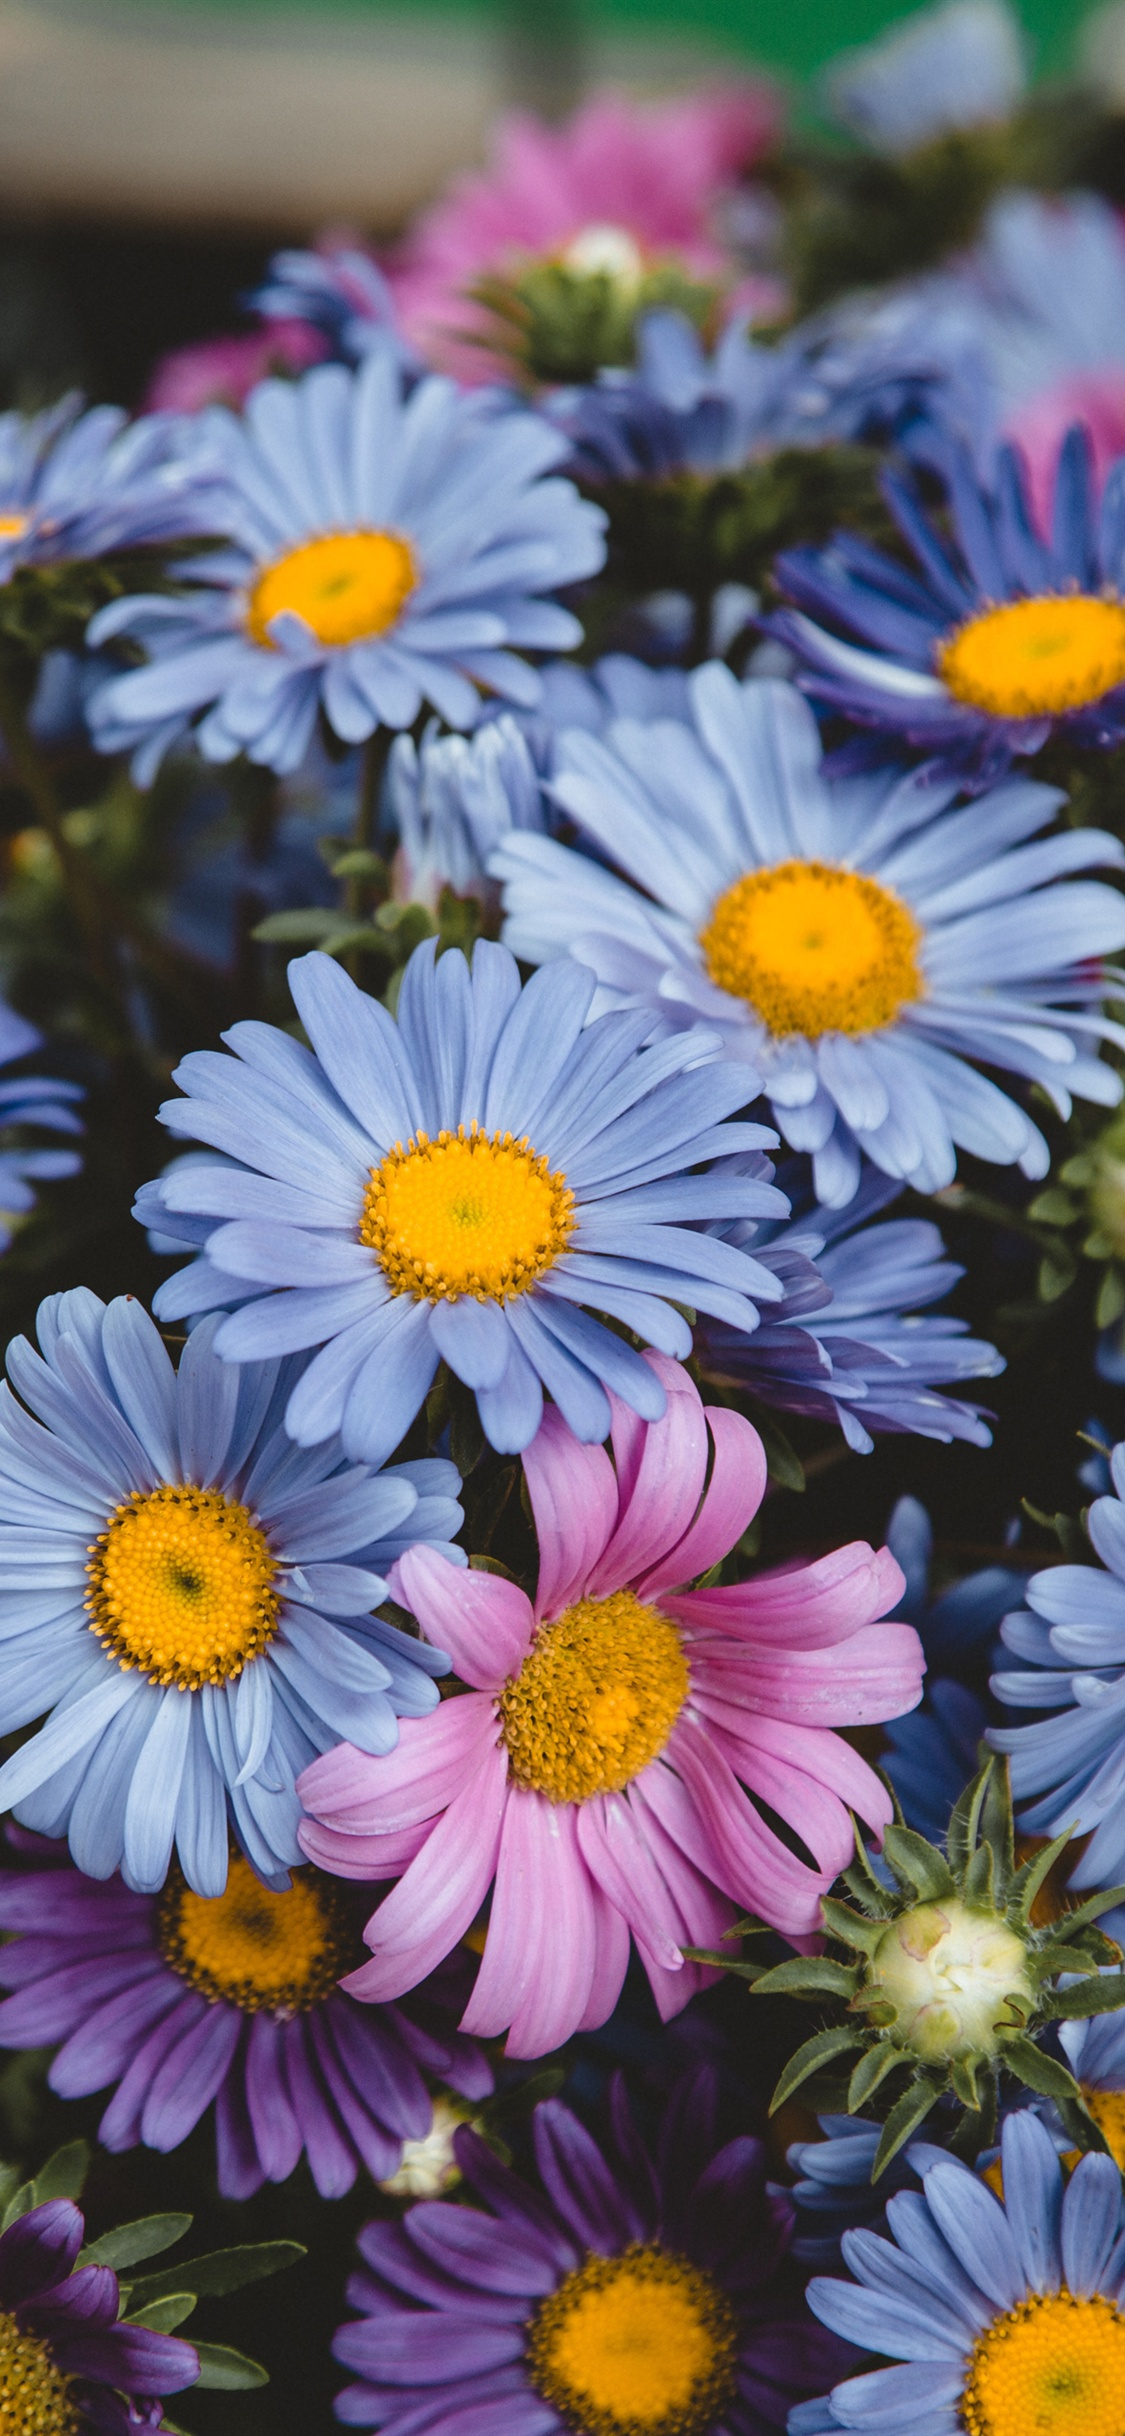 Blue And Pink Daisy Flowers Iphone X 8 7 6 5 4 3gs Wallpaper